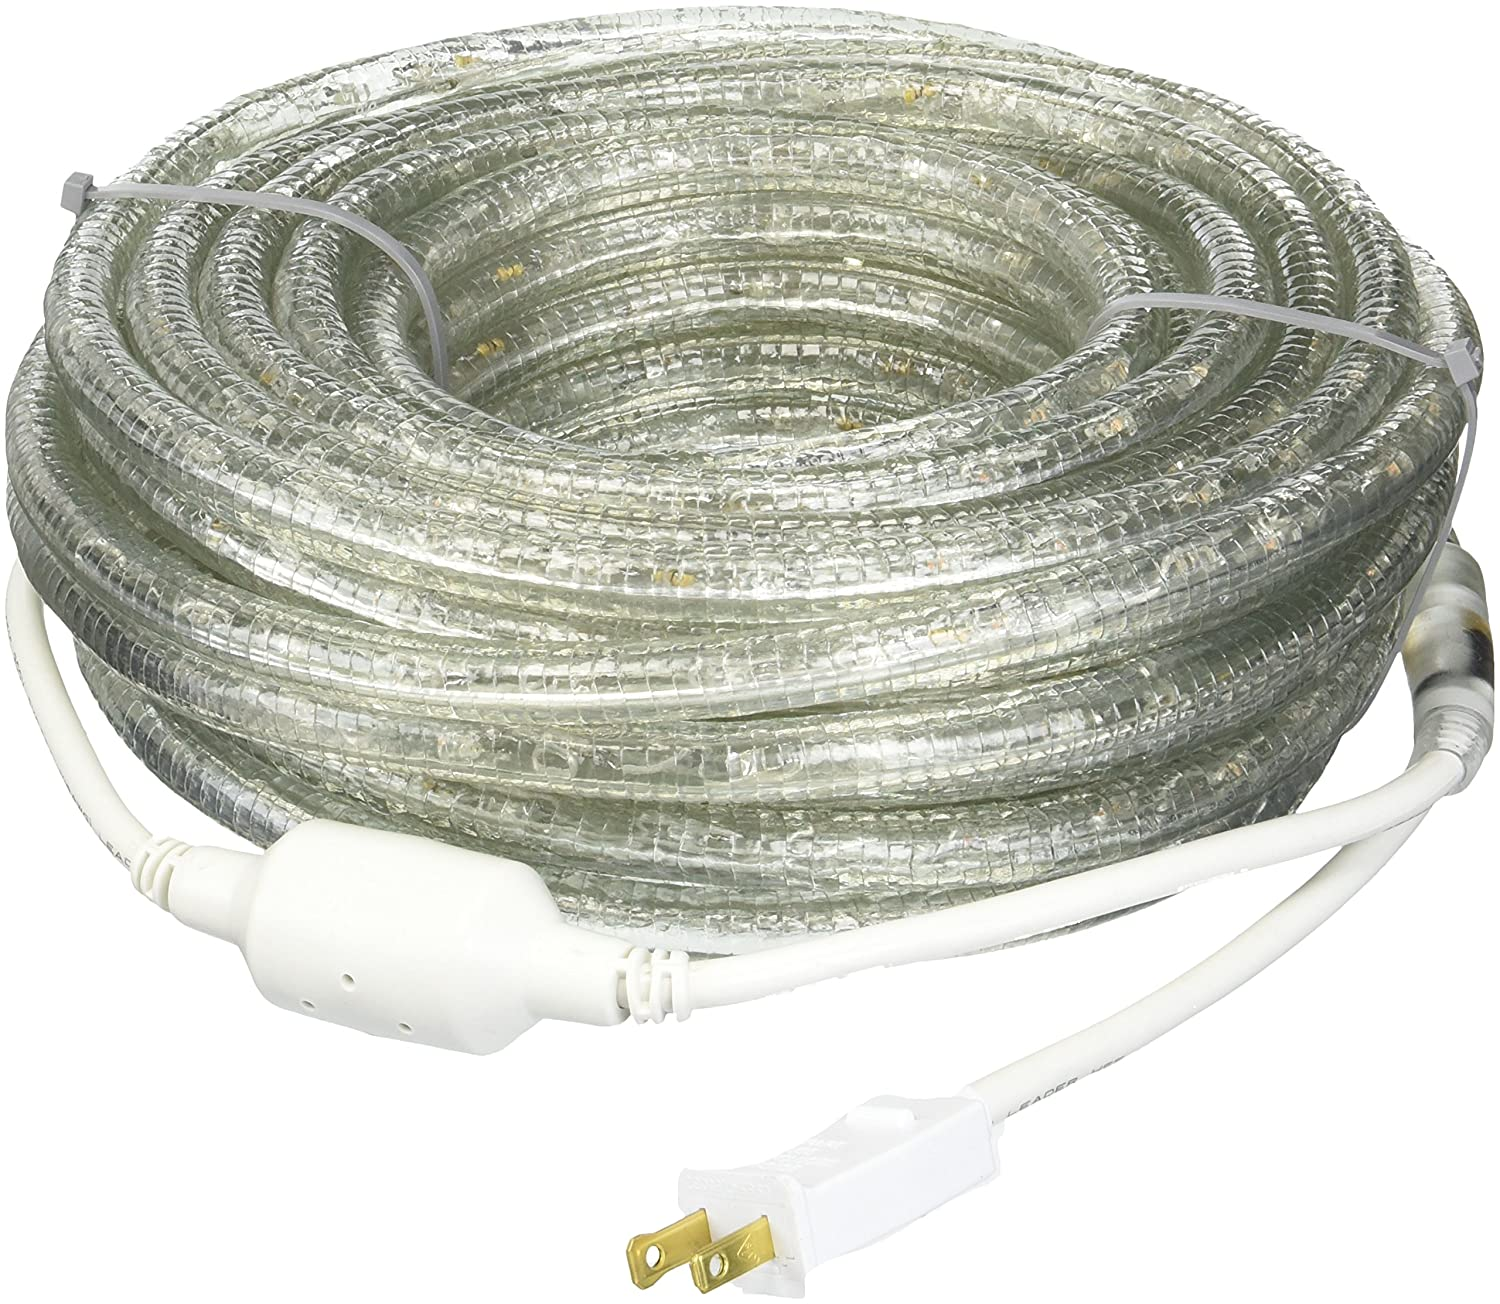 Warm White 30-Feet CBconcept 120VLR30FT-WW 120V 2-Wire 1//2-Inch LED Rope Light with 1.0-Inch LED Spacing